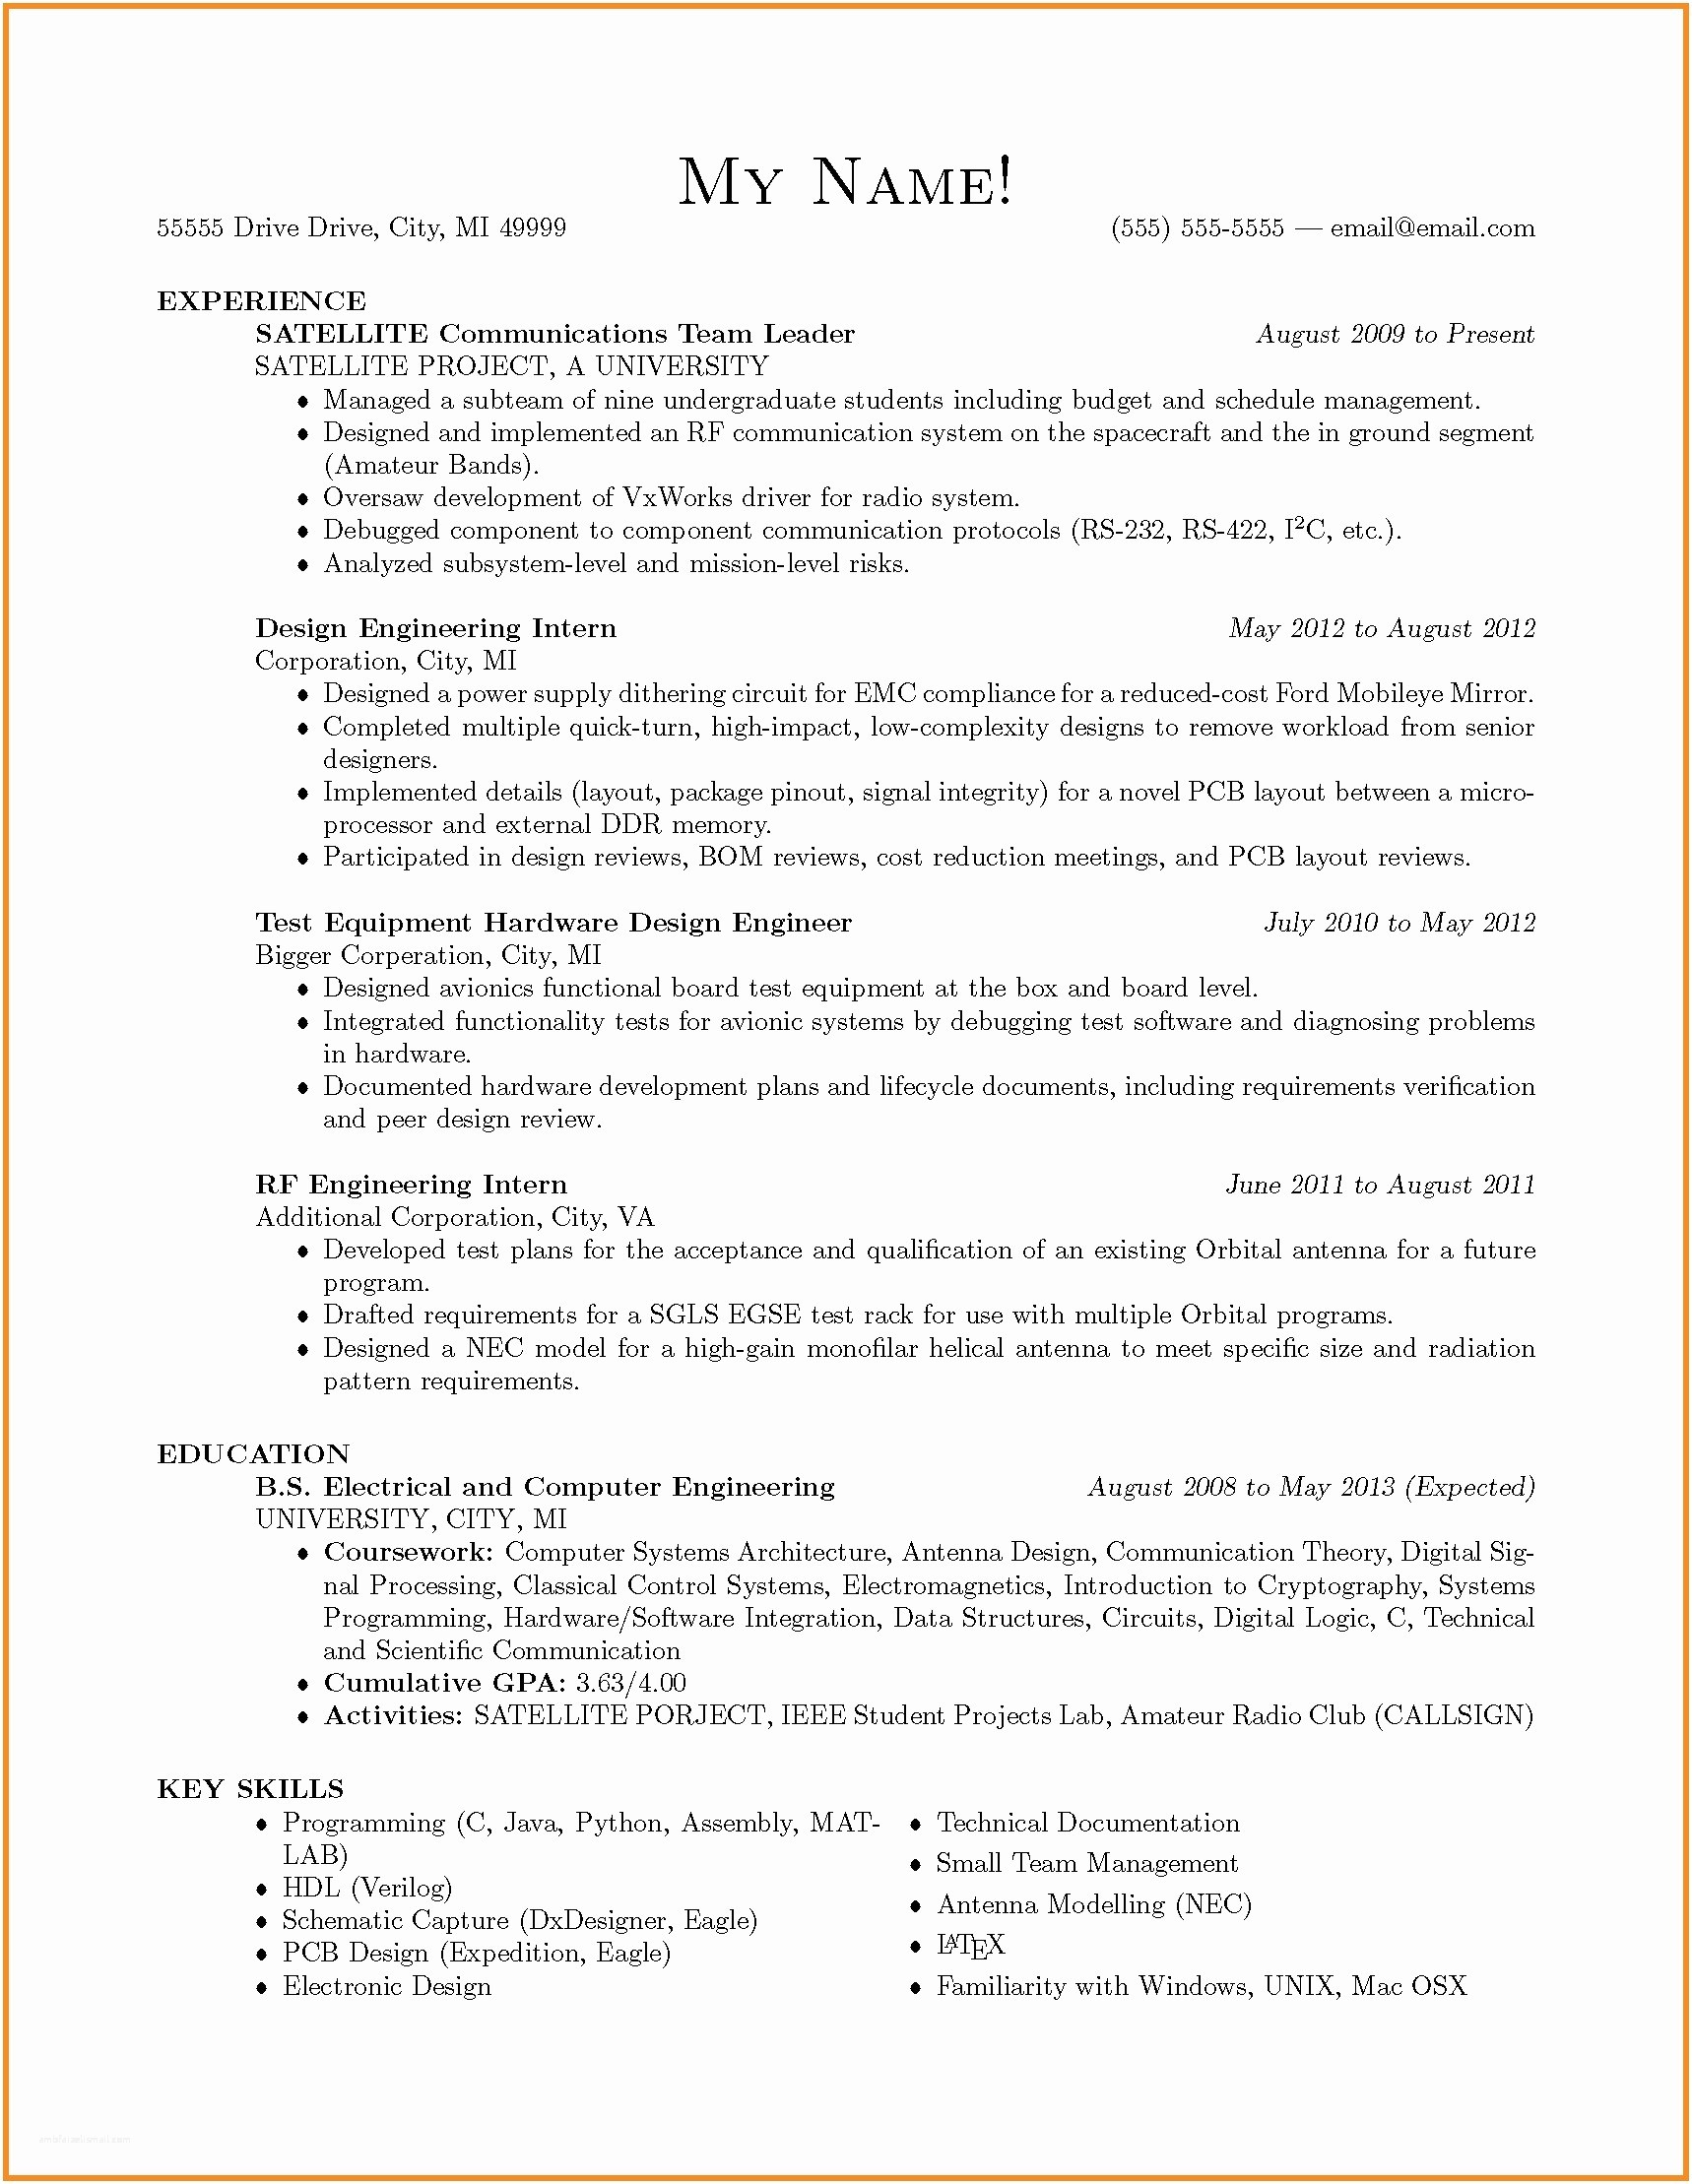 11 Hardware Design Engineer Resume Examples | Resume Template